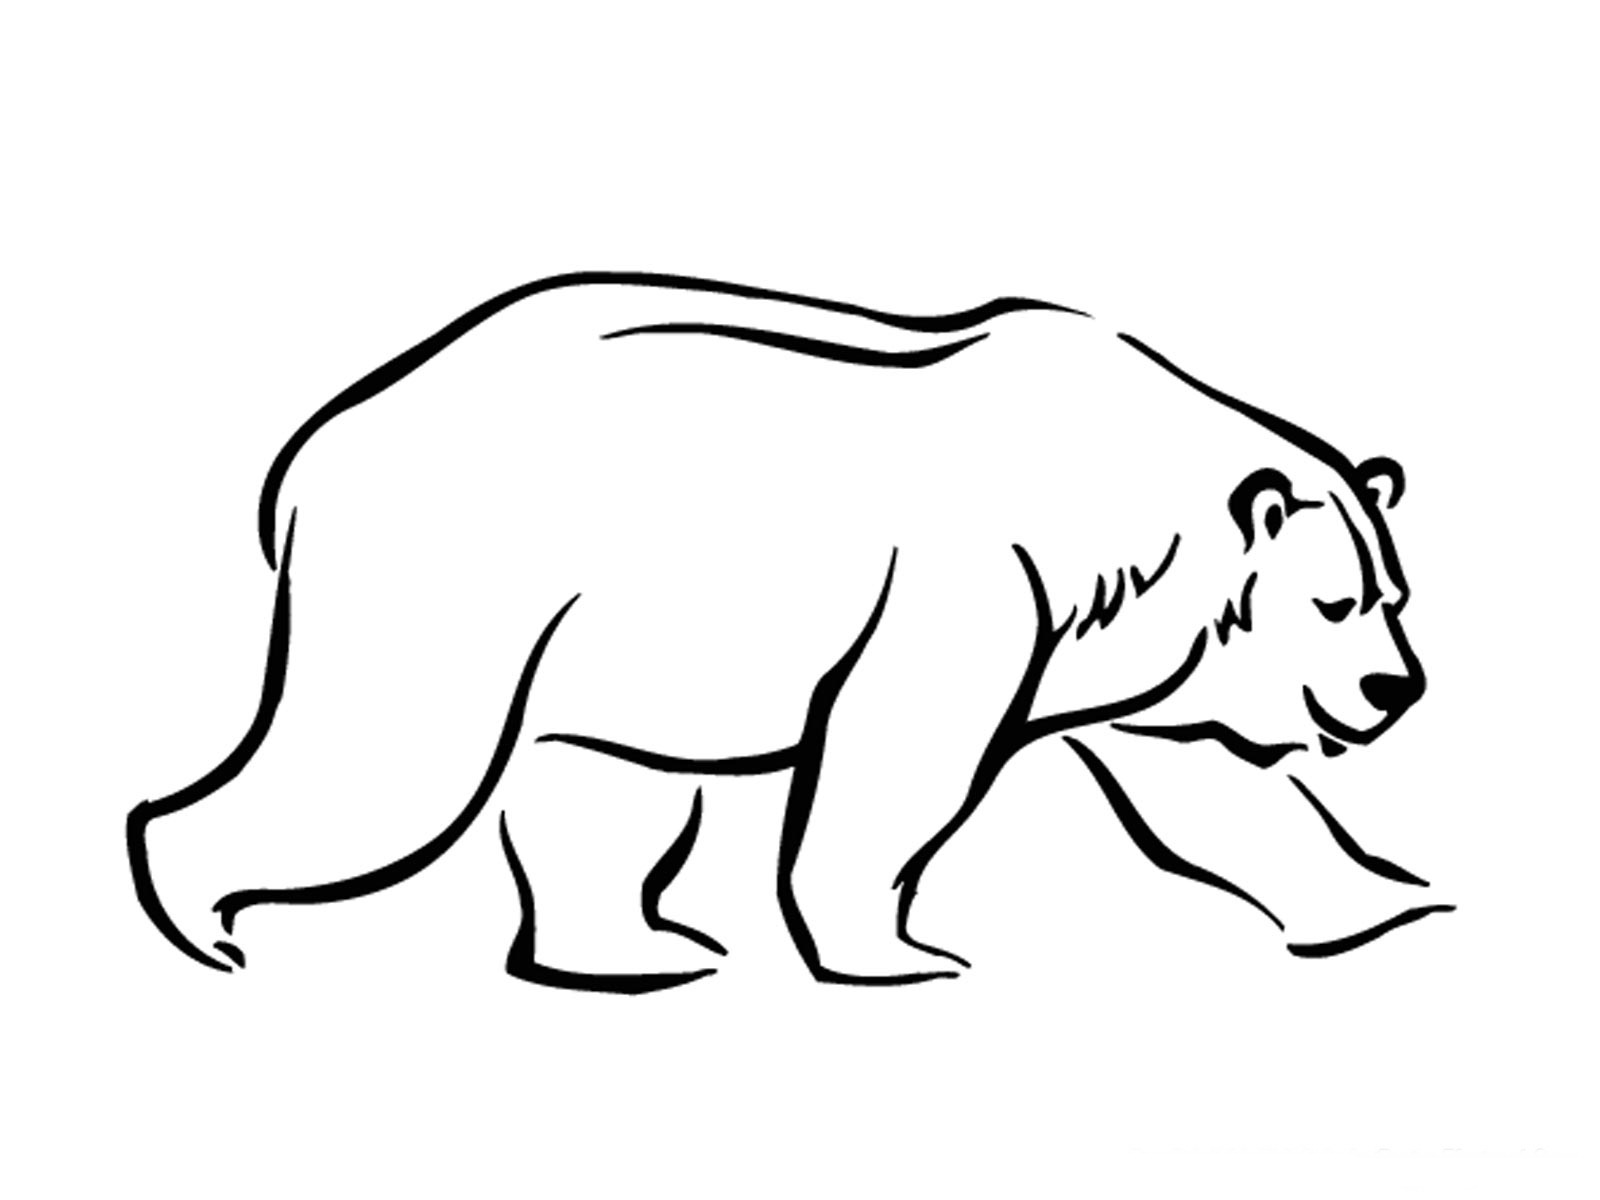 Polar animals coloring pages for kids - Free Polar Bear Coloring Pages